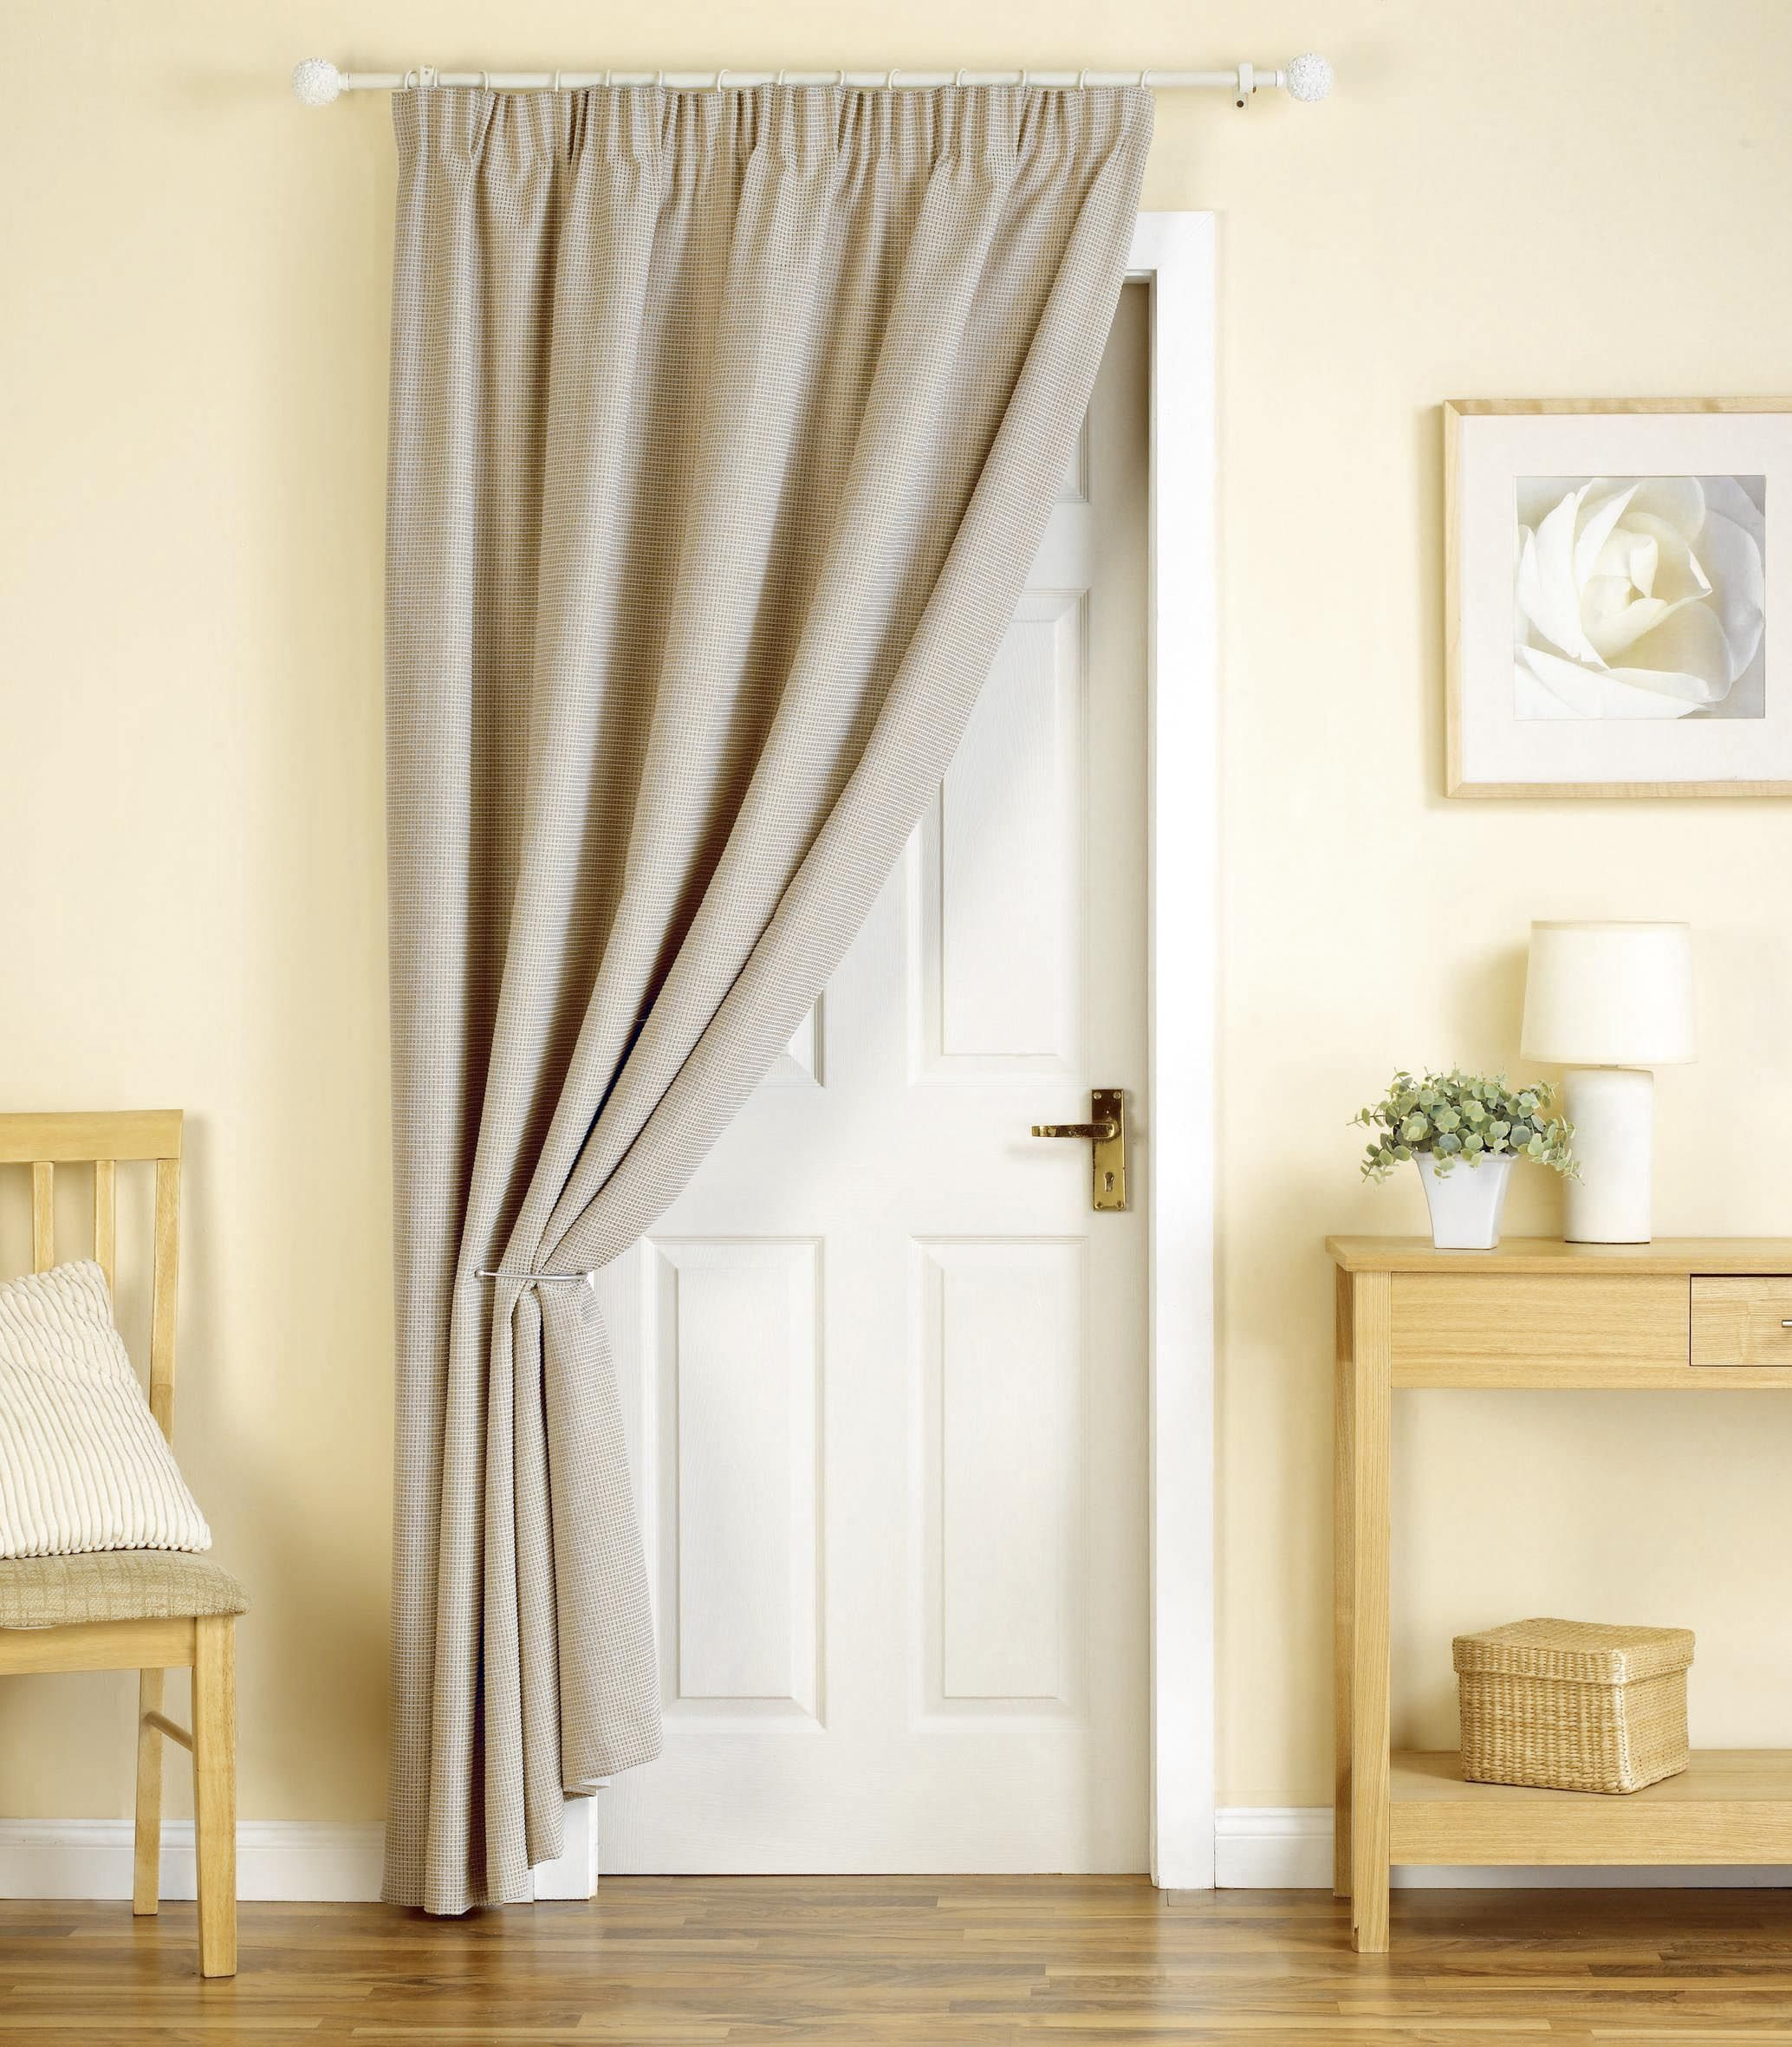 Door Curtain Ideas best 25 door panel curtains ideas on pinterest Door Curtain For Every Home & Door Curtain Ideas | Table and Chair and Door Pezcame.Com